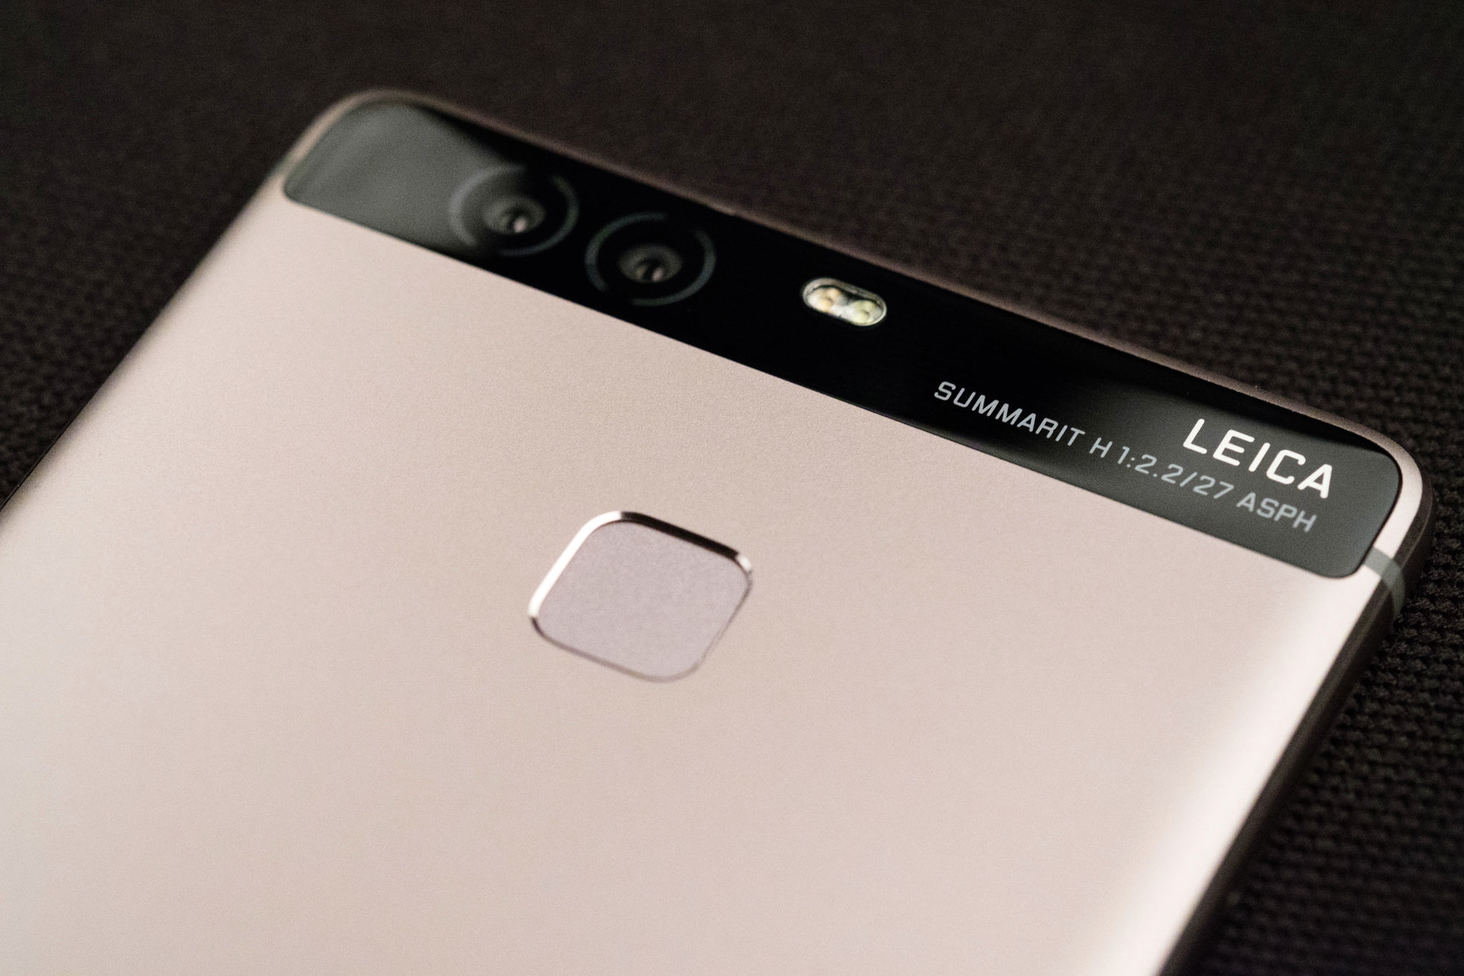 huawei p9 photo review